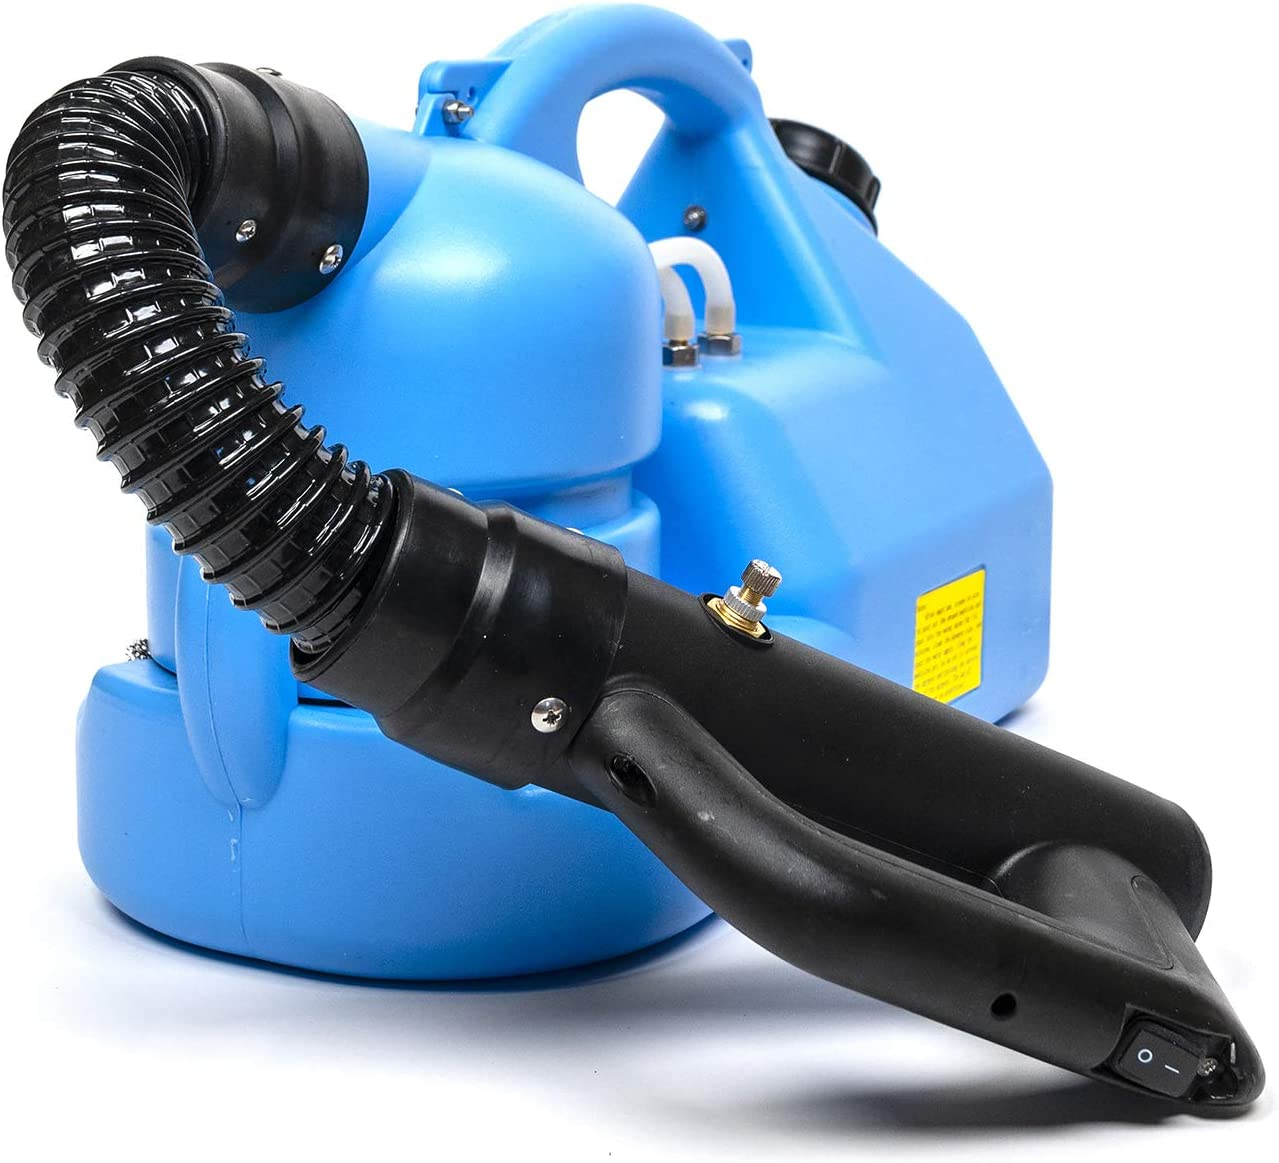 Fogggit ULV Fogger Disinfectant Sprayer for Indoors and Outdoors